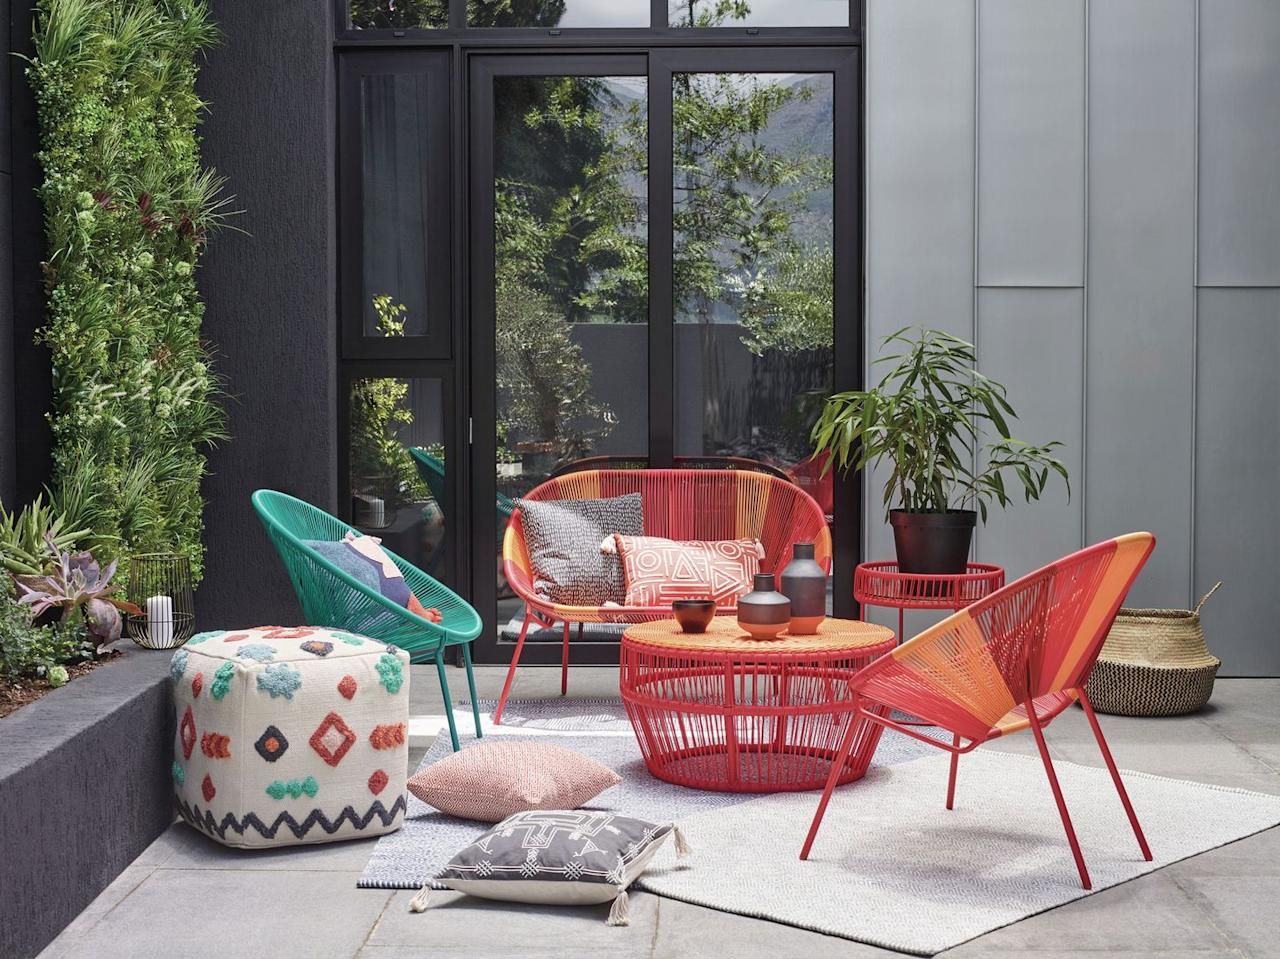 """<p><em>House by John Lewis, Salsa Garden Chair set of two (1 shown), Orange Sunrise, £140, John Lewis & Partners</em></p><p><a class=""""body-btn-link"""" href=""""https://go.redirectingat.com?id=127X1599956&url=https%3A%2F%2Fwww.johnlewis.com%2Fhouse-by-john-lewis-salsa-garden-chair-set-of-2%2Fp3813525&sref=http%3A%2F%2Fwww.housebeautiful.com%2Fuk%2Fgarden%2Fg21058049%2Foutdoor-garden-furniture-sets%2F"""" target=""""_blank"""">BUY NOW</a></p><p>Colourful and contemporary, this striking steel and rattan constructed chair is the best way to make a style statement this summer. The salsa range also includes a <a href=""""https://www.johnlewis.com/house-by-john-lewis-salsa-2-seater-garden-sofa/orange-sunrise/p3809589"""" target=""""_blank"""">two-seater garden sofa</a> and a <a href=""""https://www.johnlewis.com/house-by-john-lewis-salsa-garden-coffee-table-80cm/orange-sunrise/p3809372"""" target=""""_blank"""">garden coffee table.</a> <strong>Shop the full <a href=""""https://www.johnlewis.com/house-by-john-lewis-salsa-garden-outdoor-furniture/p89029320"""" target=""""_blank"""">Salsa range here</a>. </strong></p>"""